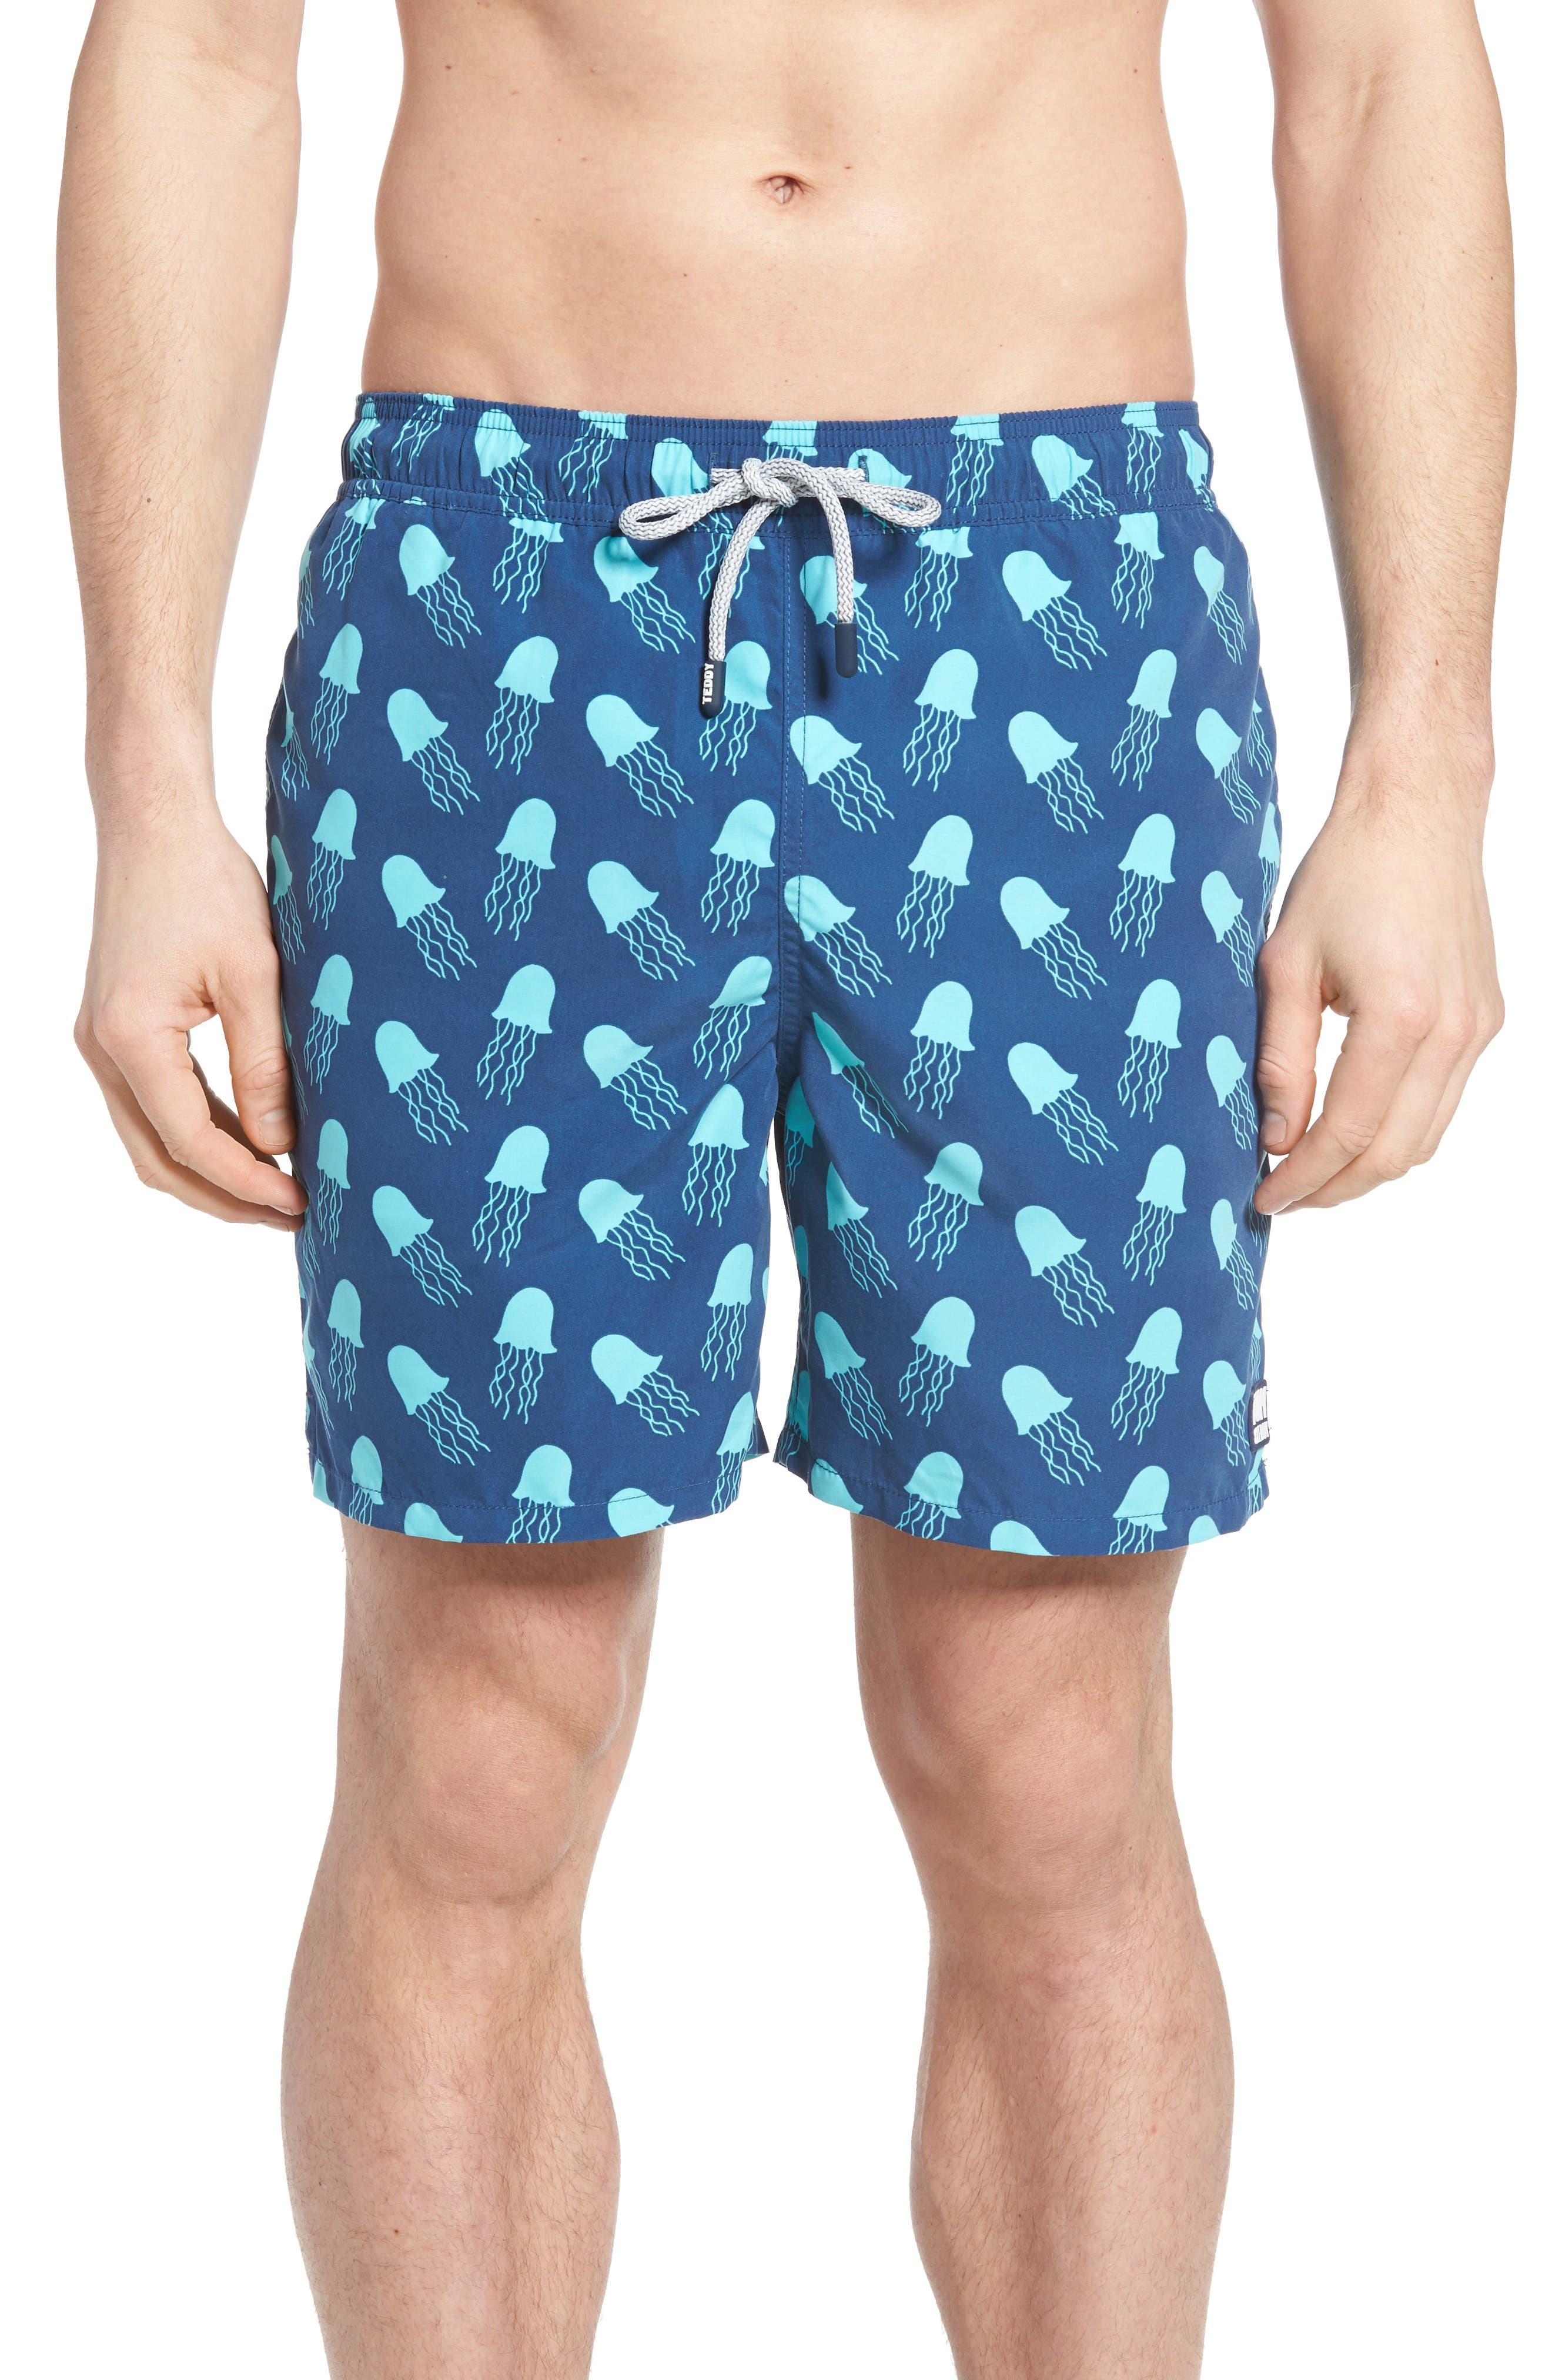 Jellyfish Print Swim Trunks,                         Main,                         color, NAVY TURQUOISE